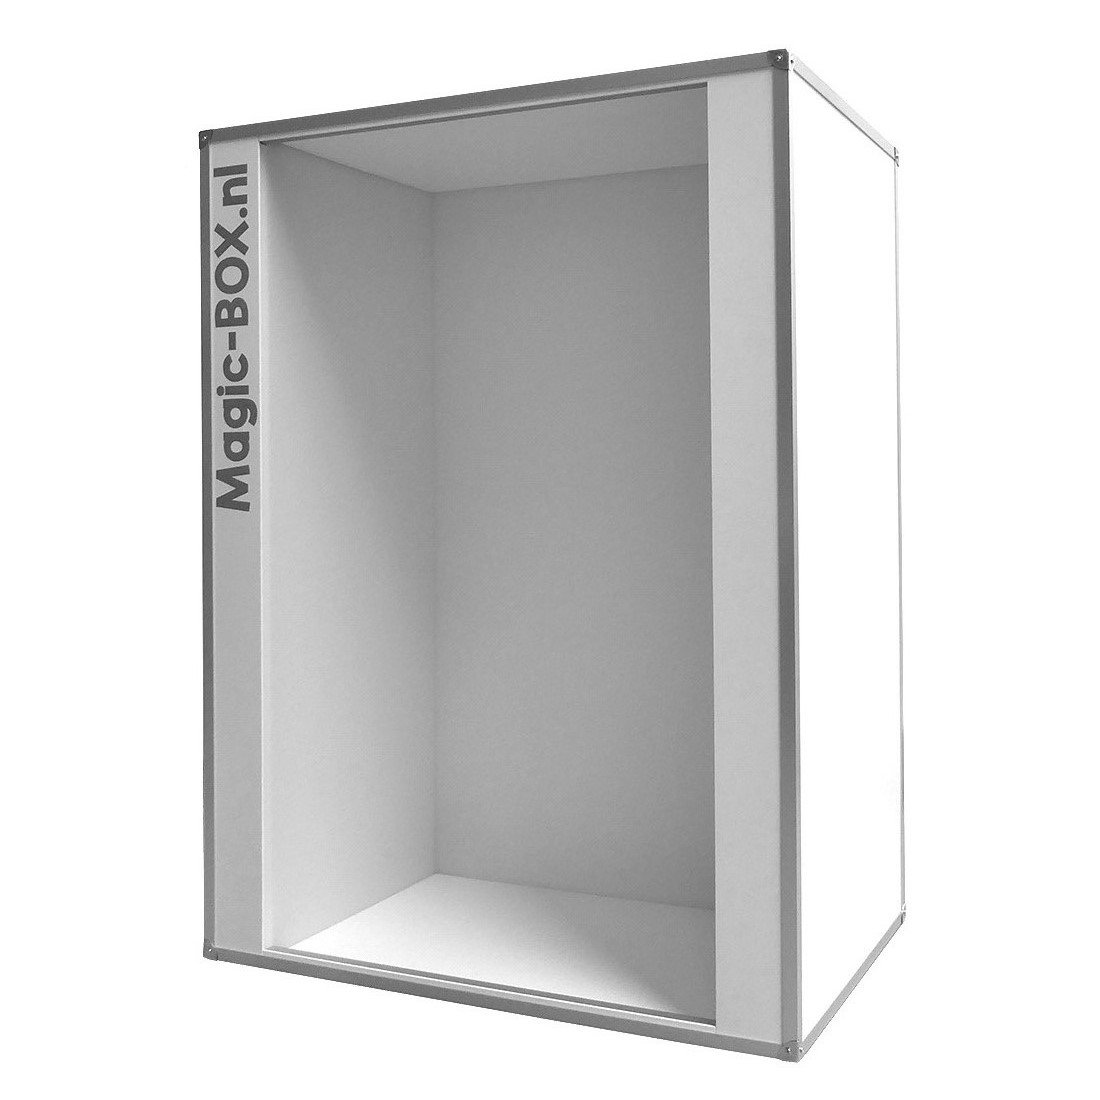 Productfotografie fotostudio MagicBOX Frame Pro